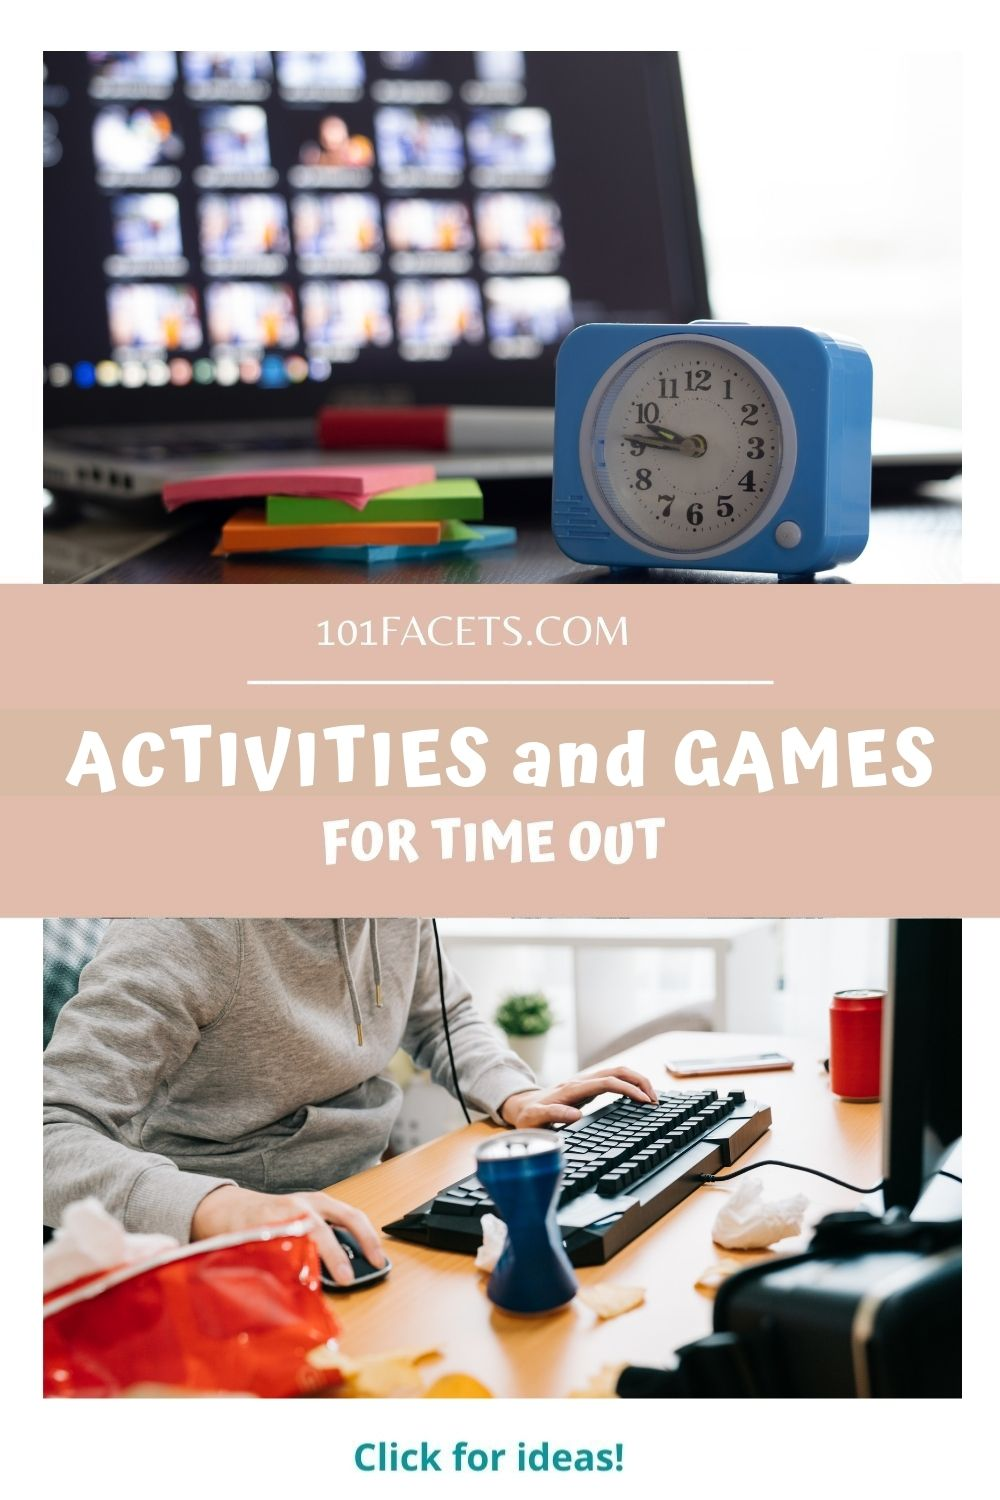 Games You Can Play on Your Break